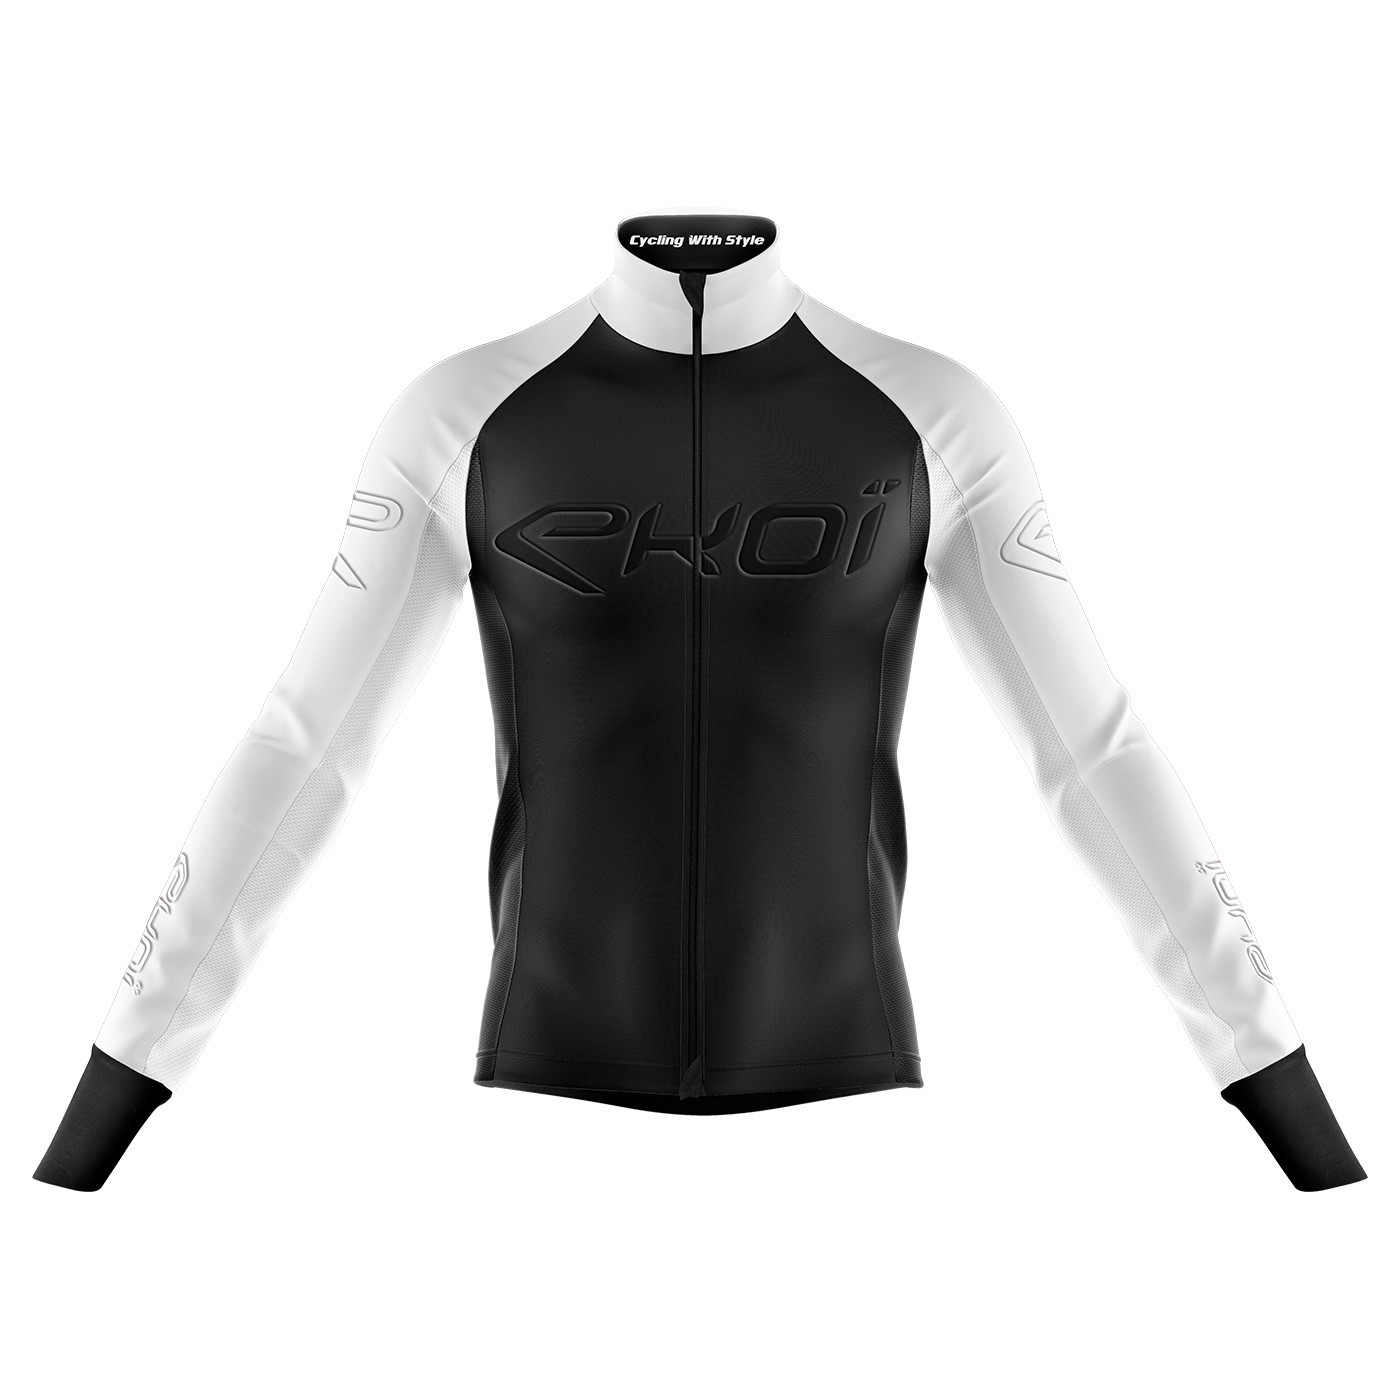 4de3bdc8f99 EKOÏ LAUNCHES A NEW CYCLING JACKET WITH EXCLUSIVE EMBOSSED FINISH ...